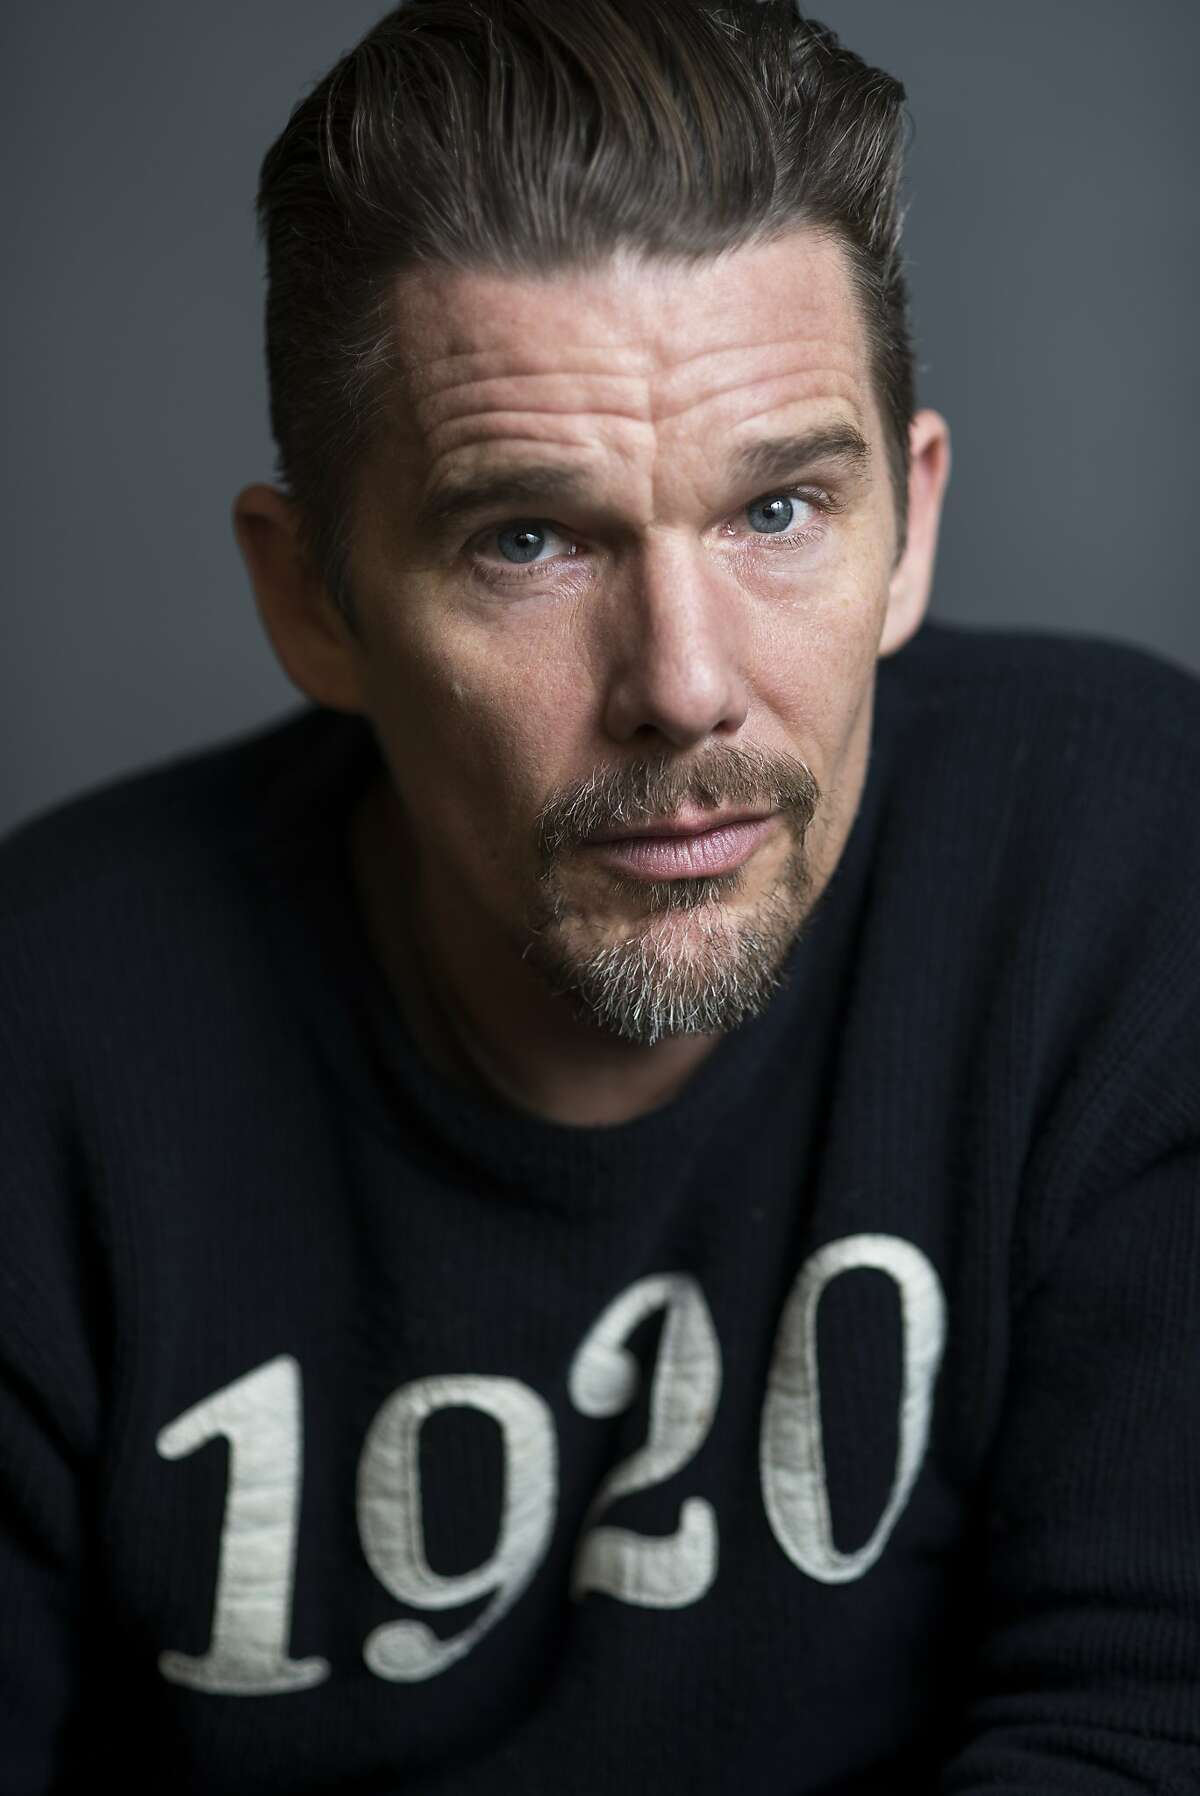 Actor and writer Ethan Hawke was born in Austin, Texas.